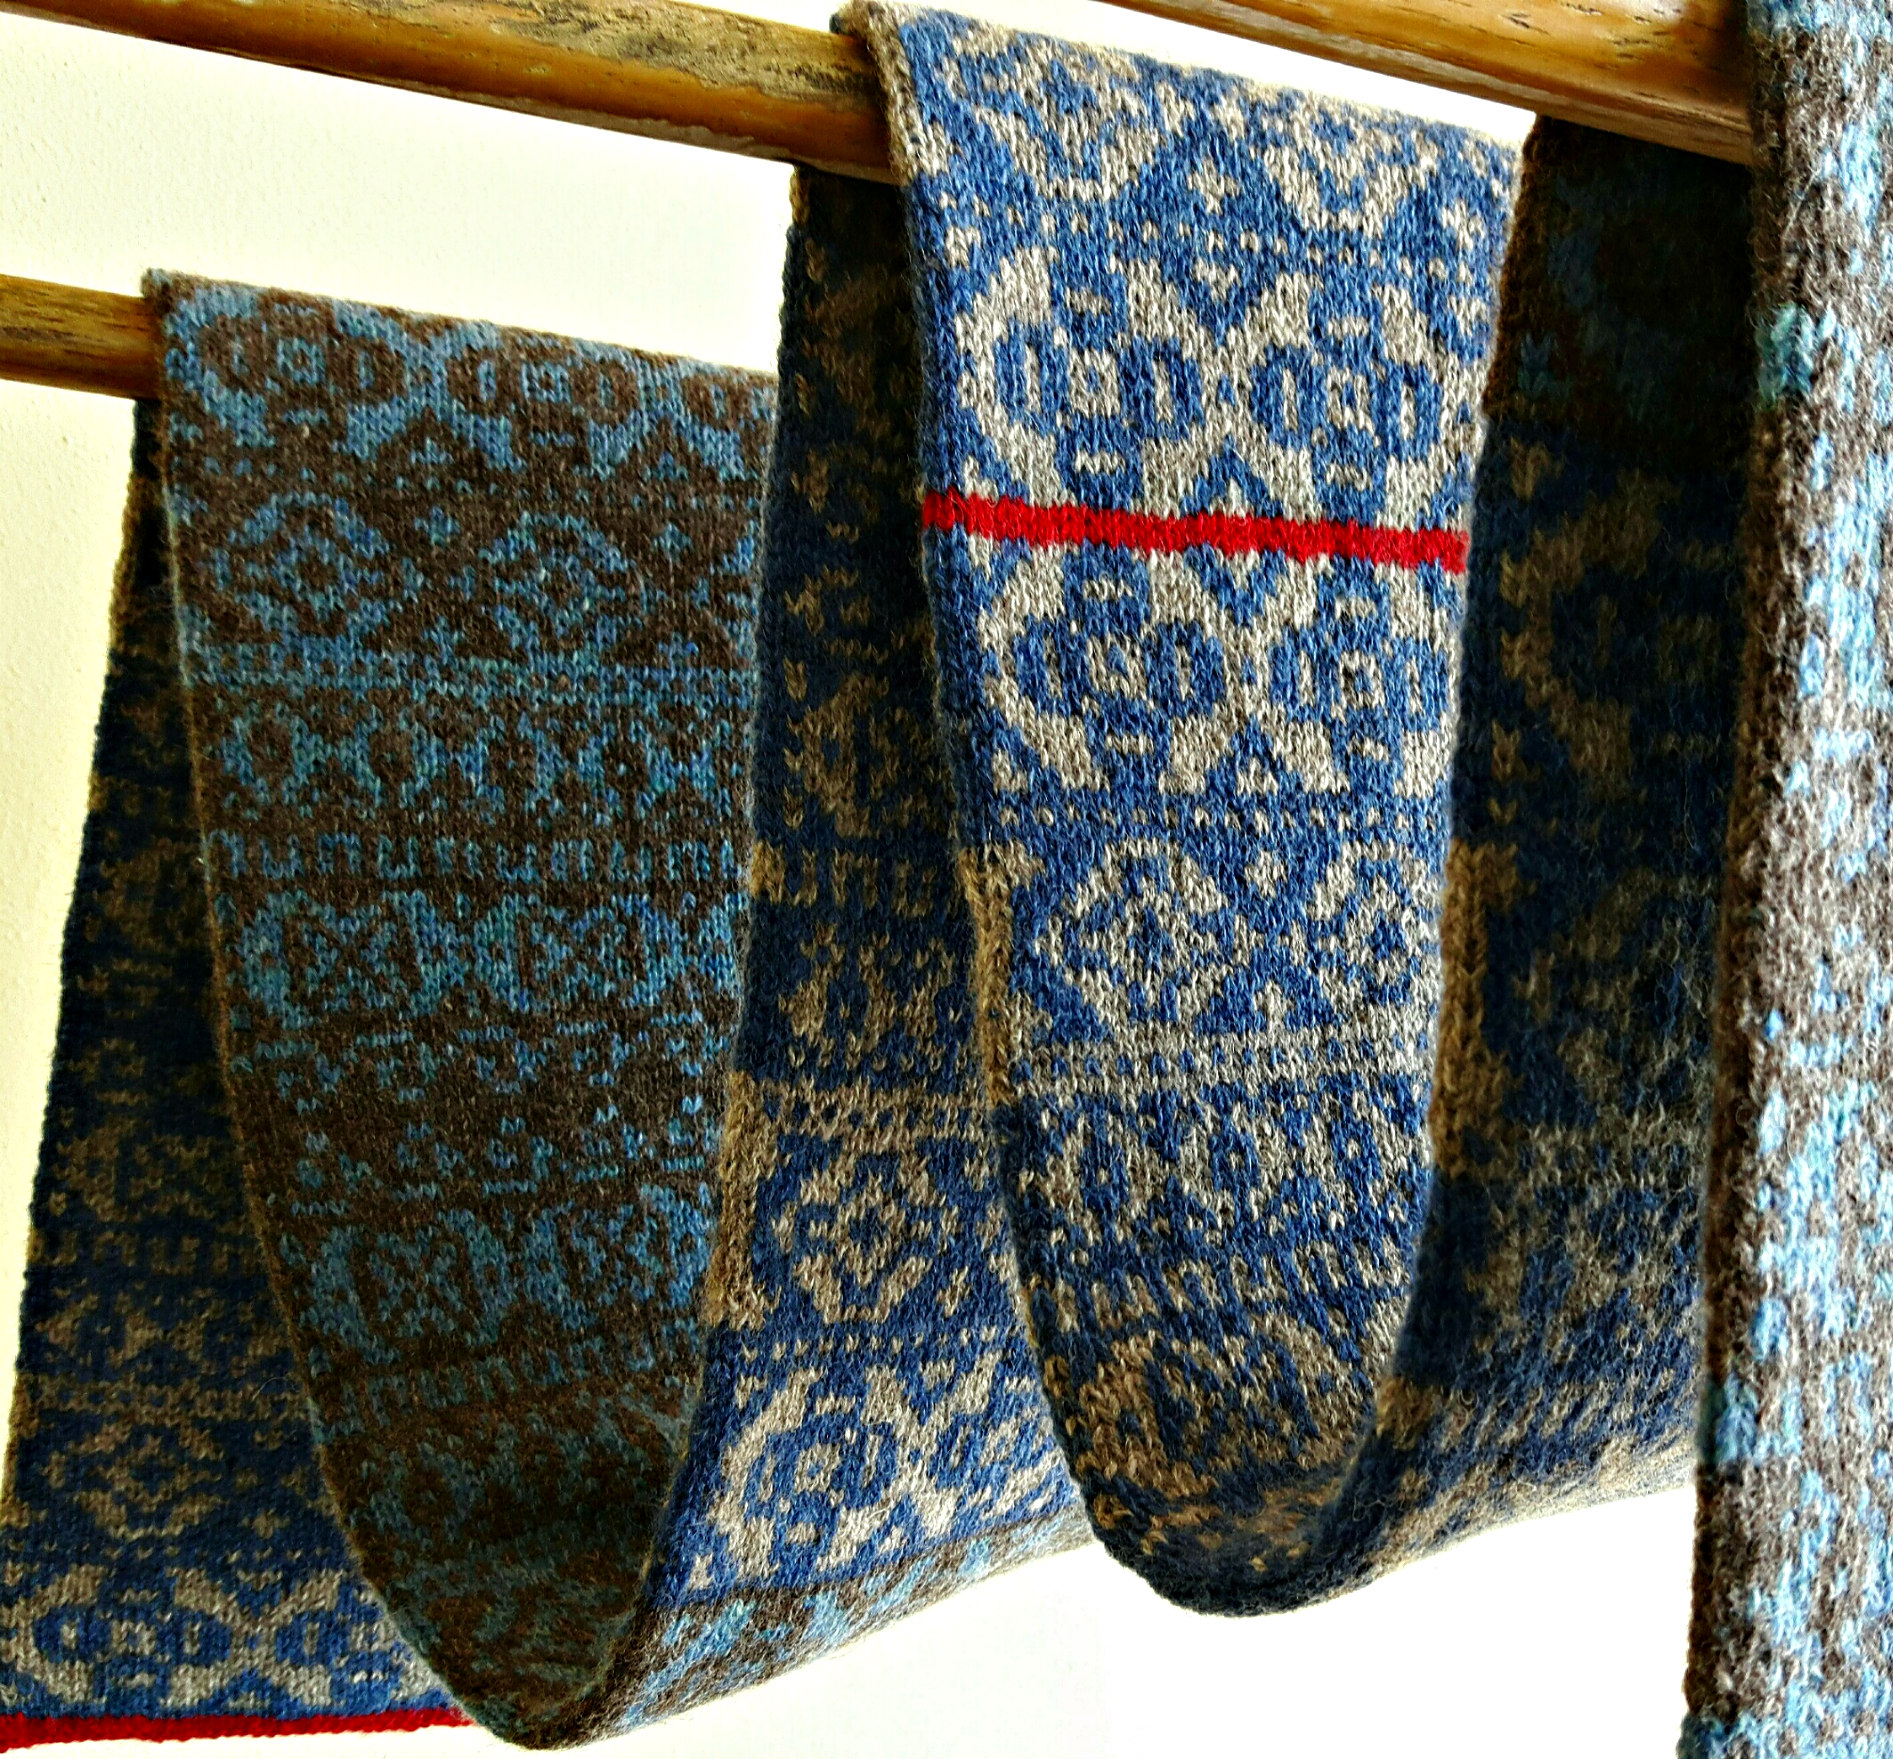 Hand Knit Scarf Pattern Fair Isle Hand Knit Scarf In Blues And Greys This Man Knits